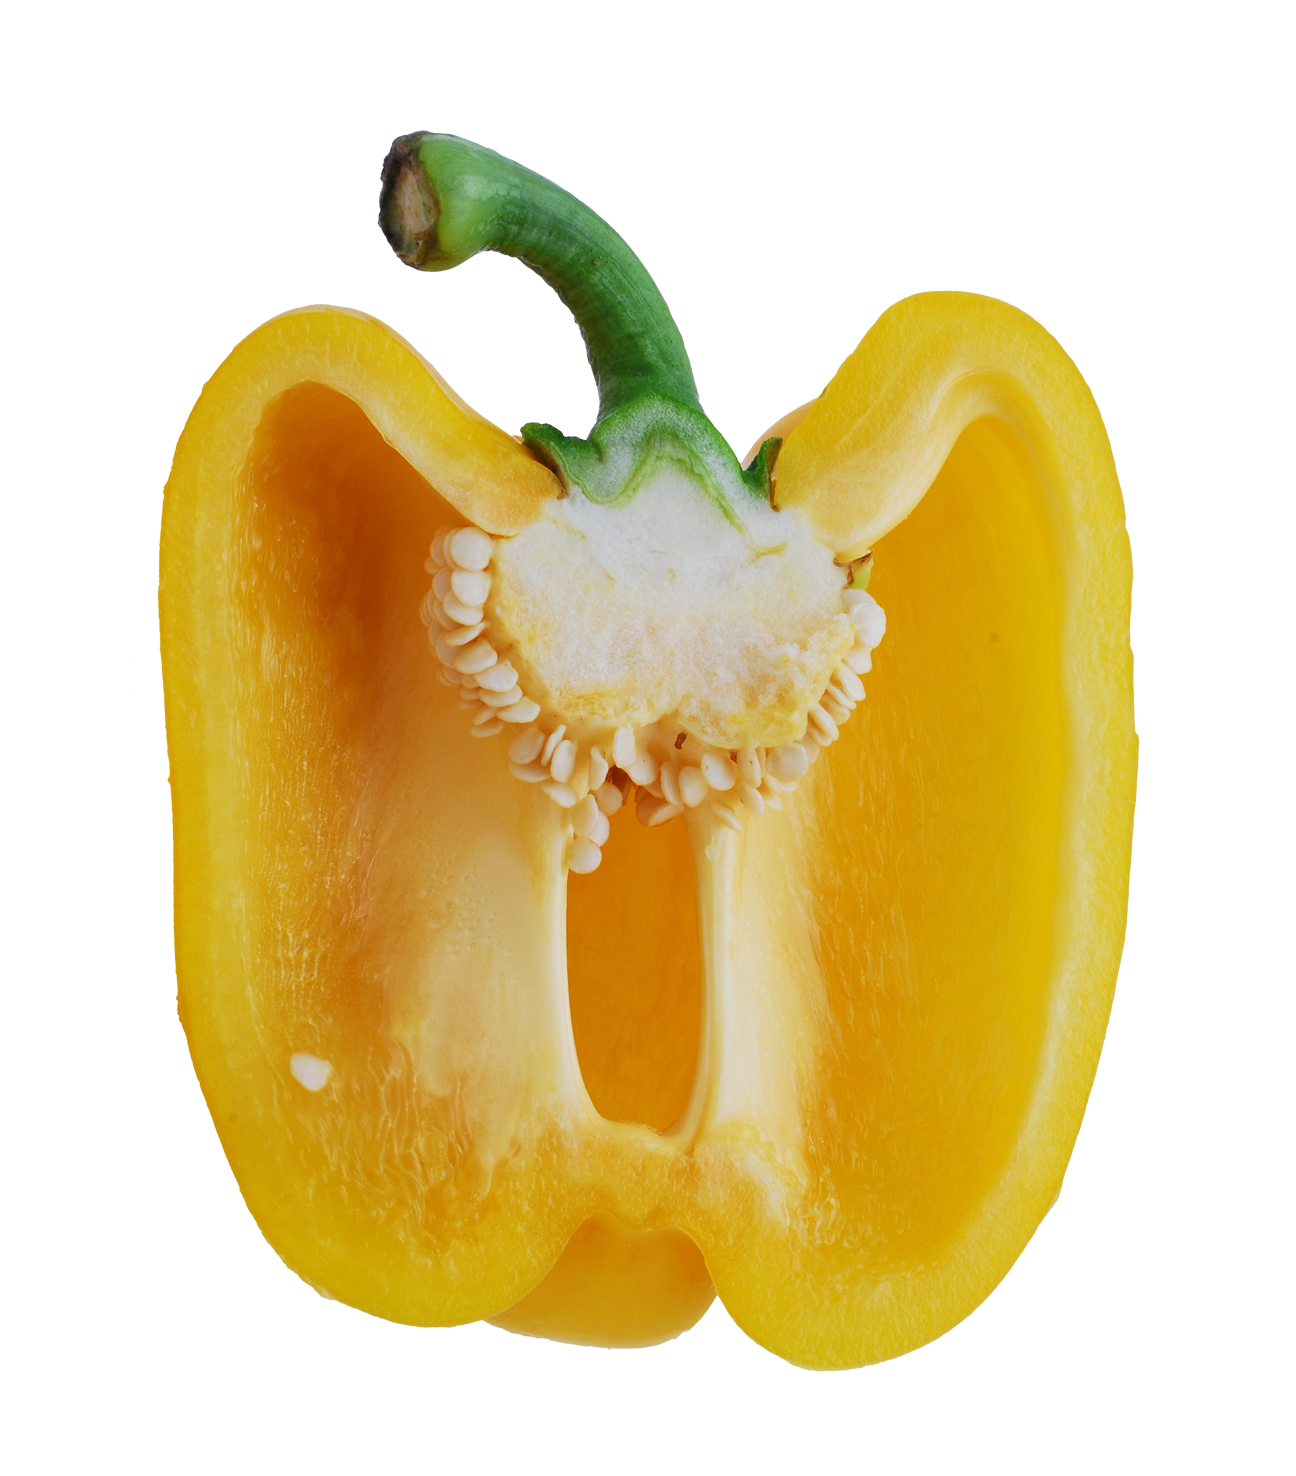 Peppers clipart yellow pepper. Bell half png image